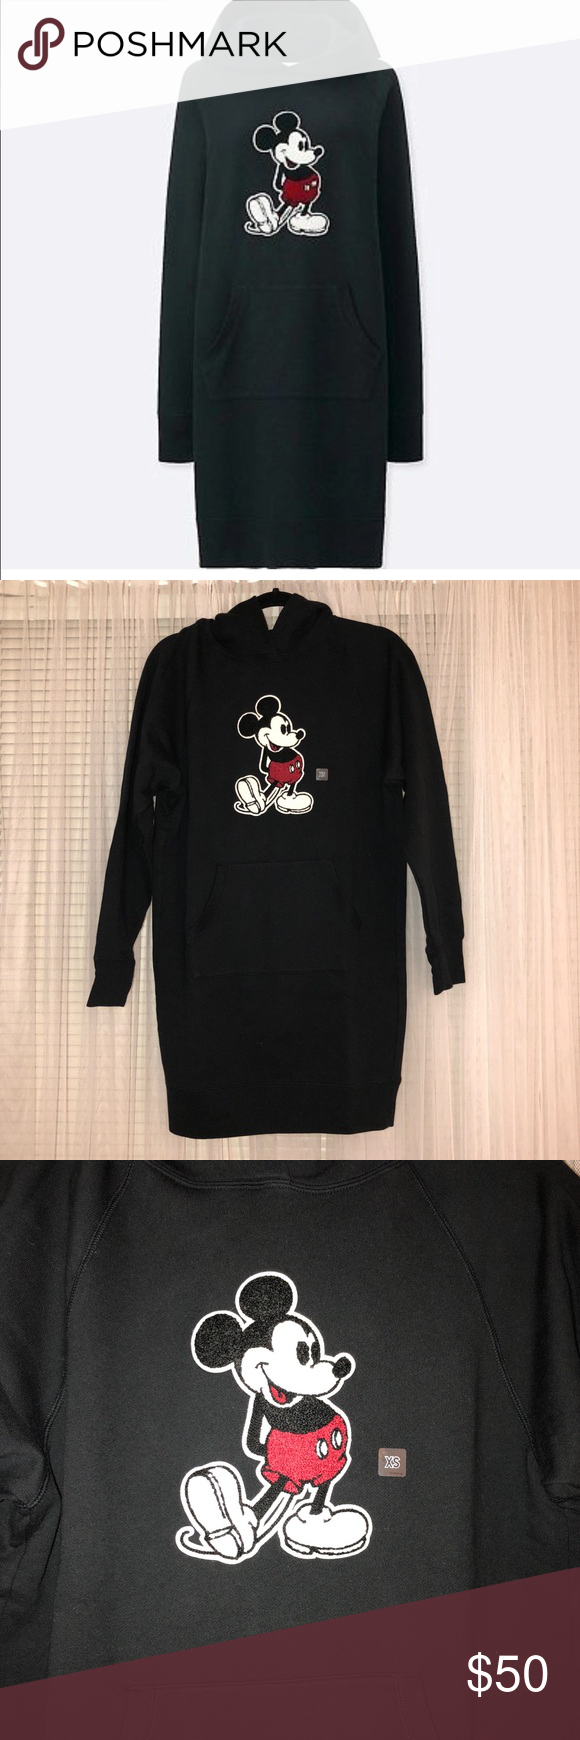 4839785bbba UNIQLO Mickey Graphic Sweat Long Sleeve Dress Women s UNIQLO Mickey Stands  Graphic Sweat Long Sleeve Dress with Hood. Color is black